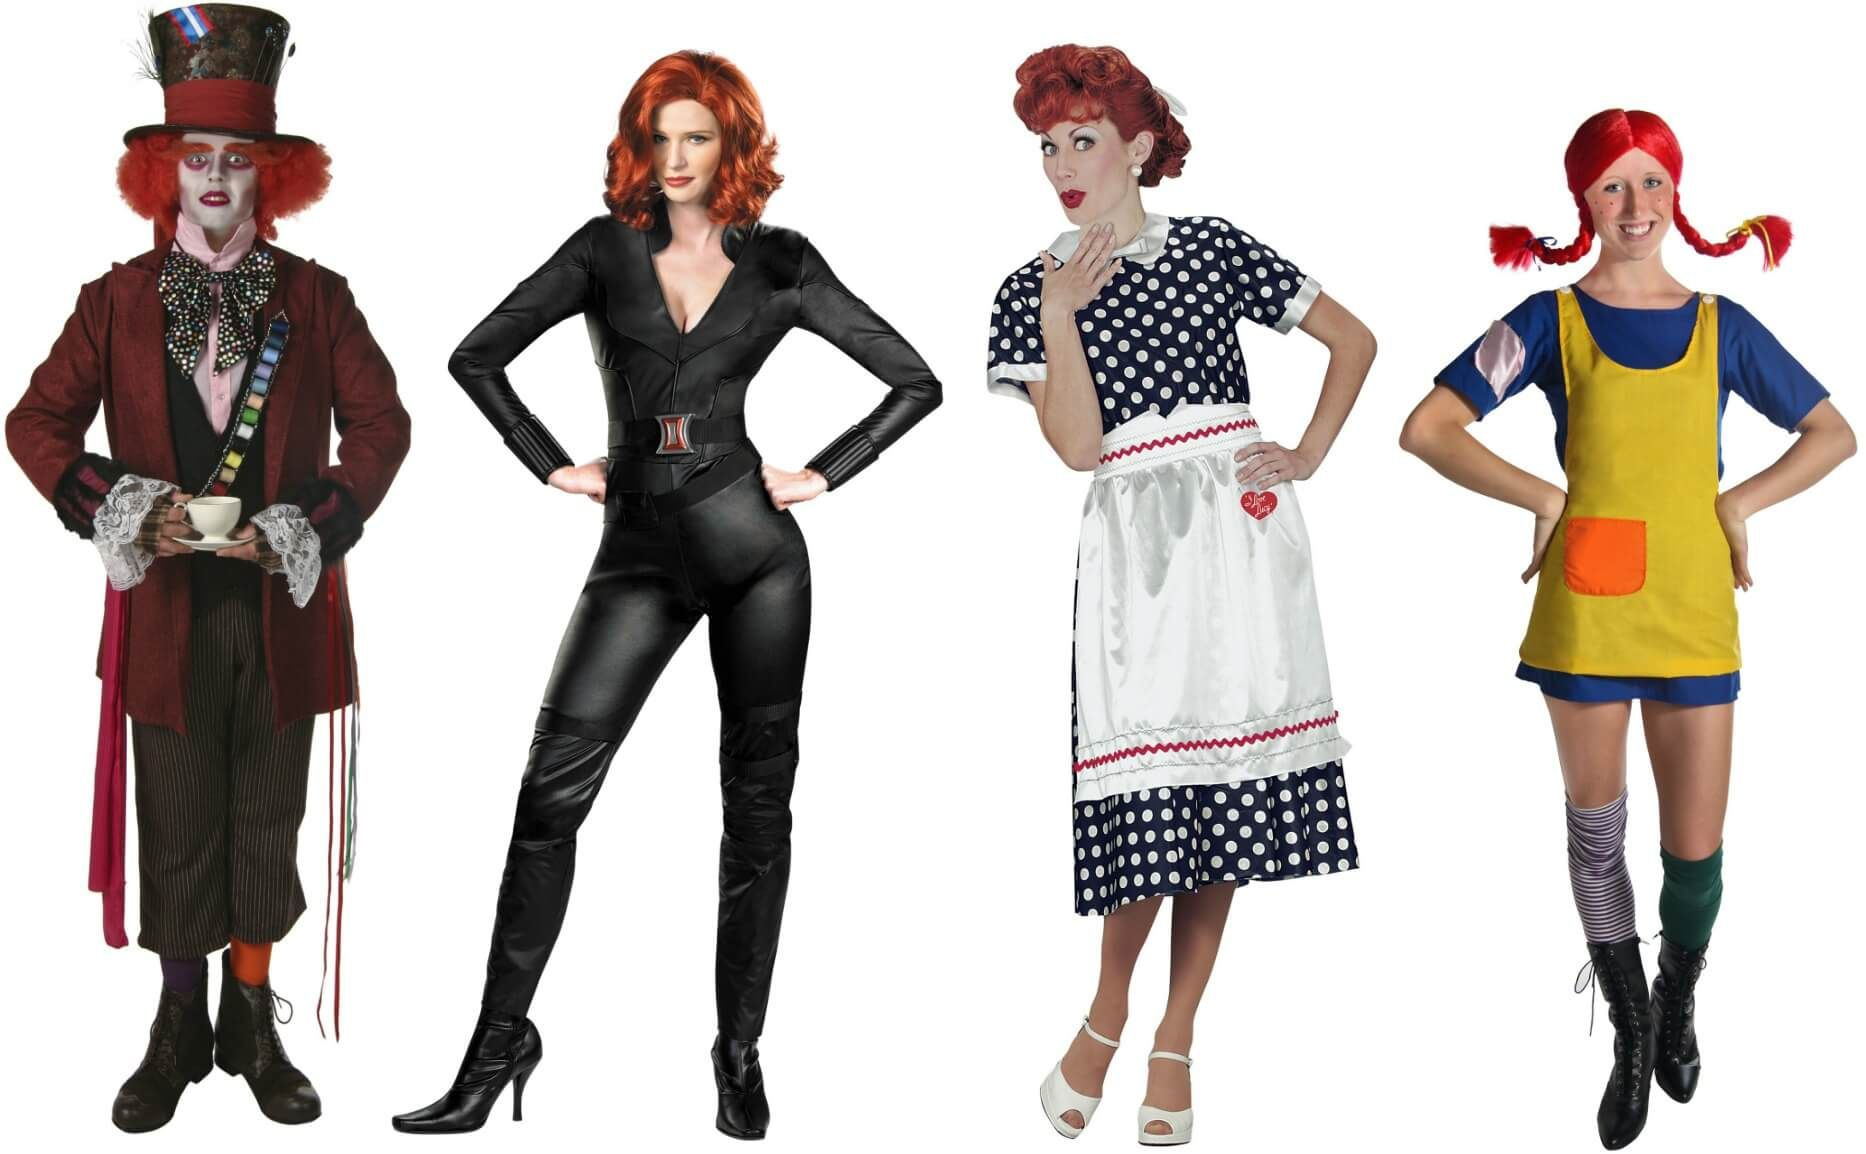 Halloween Costumes For Redheads Halloweencostumes Com Blog Halloween Costumes Redhead Red Hair Halloween Costumes Red Head Halloween Costumes